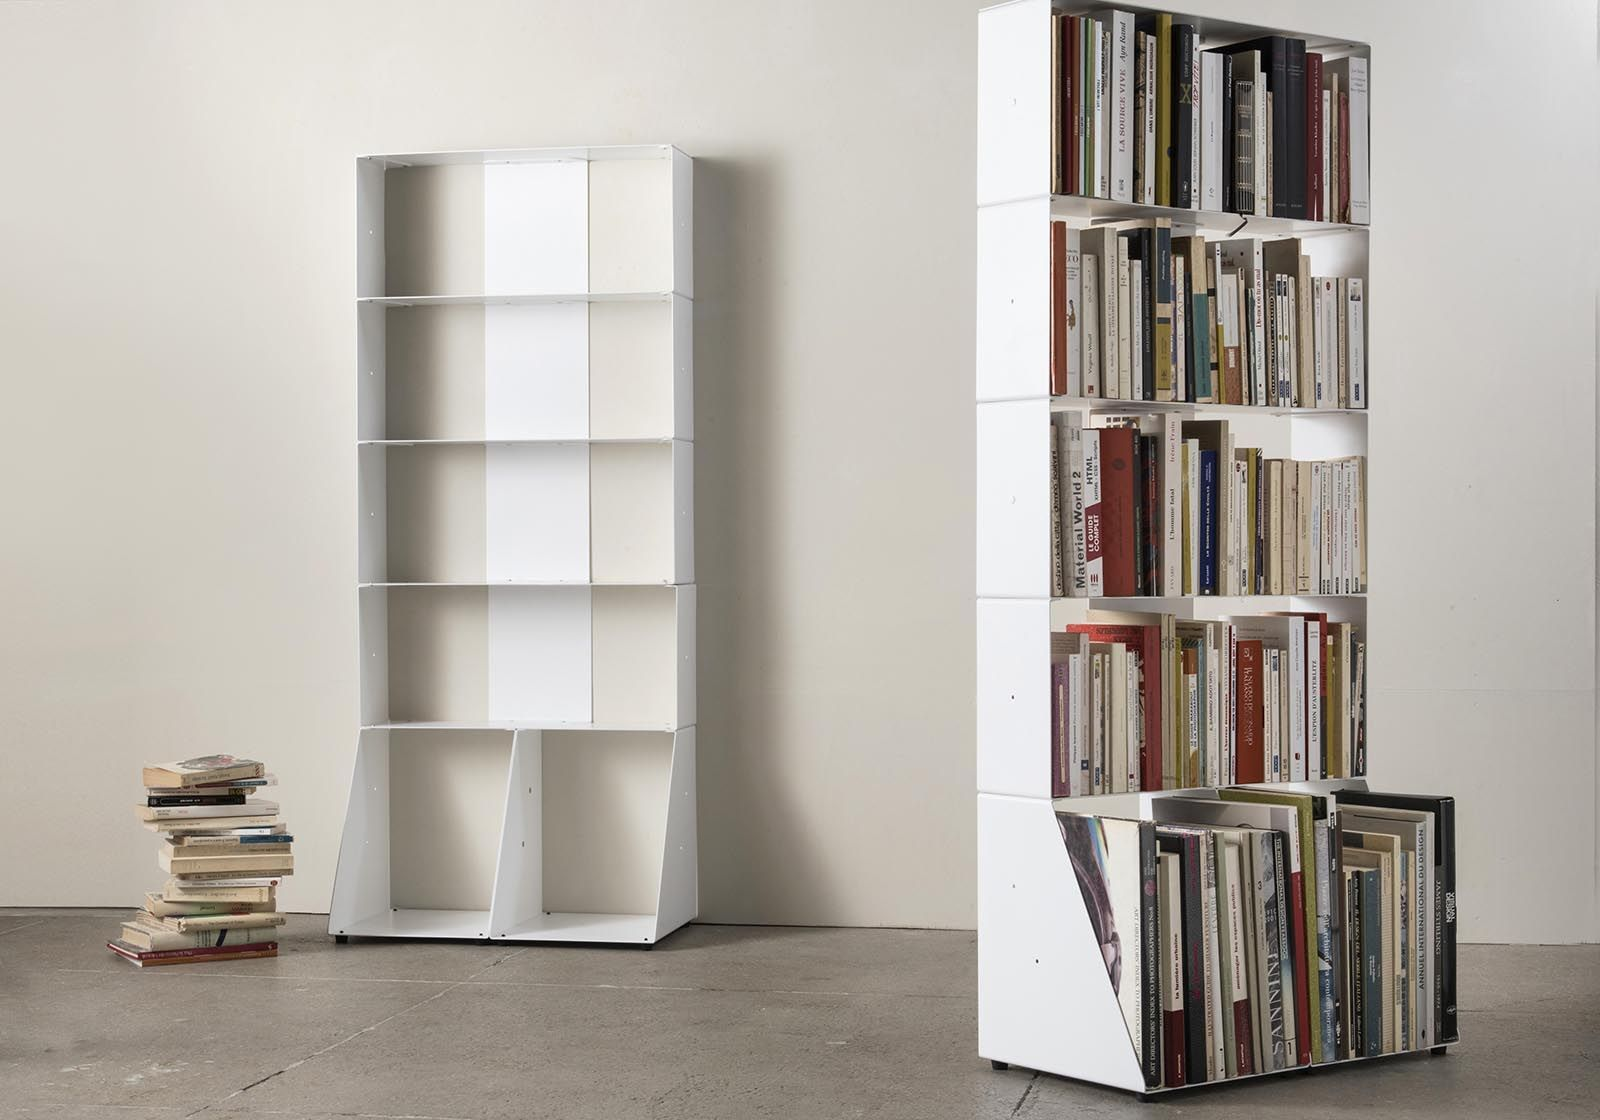 meuble biblioth que 60 cm m tal blanc 5 niveaux. Black Bedroom Furniture Sets. Home Design Ideas